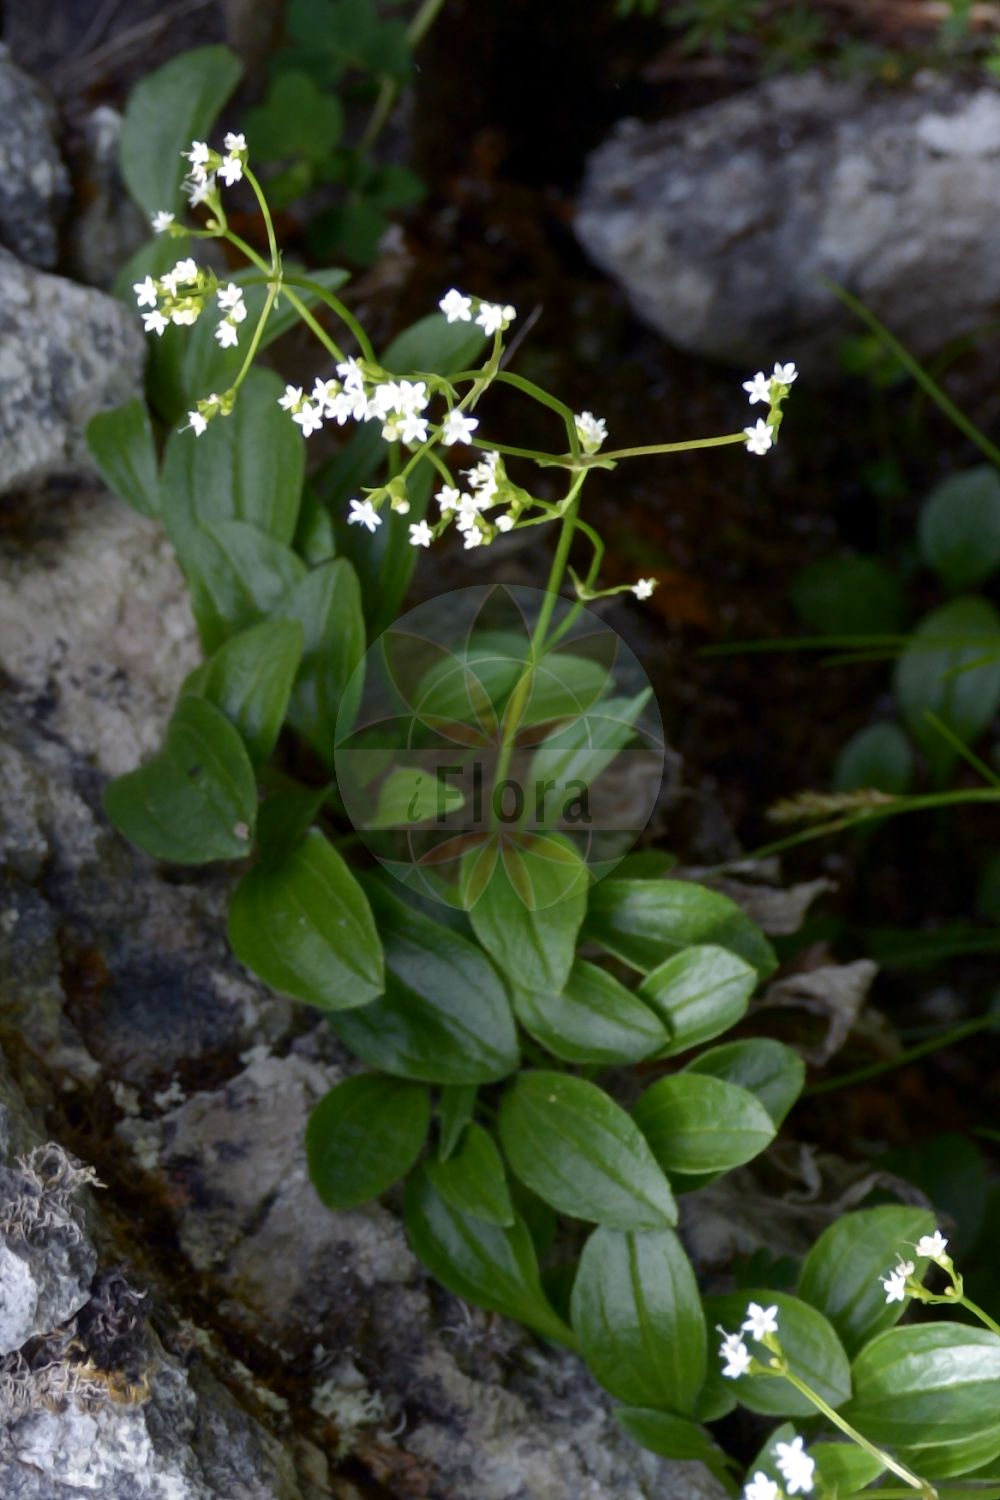 Foto von Valeriana saxatilis (Felsen-Baldrian - Rock Valerian). Das Foto wurde in Schachen, Garmisch-Partenkirchen, Bayern, Deutschland, Alpen aufgenommen. ---- Photo of Valeriana saxatilis (Felsen-Baldrian - Rock Valerian).The picture was taken in Schachen, Garmisch-Partenkirchen, Bavaria, Germany, Alps.(Valeriana saxatilis,Felsen-Baldrian,Rock Valerian,Valeriana,Baldrian,Valerian,Caprifoliaceae,Geissblattgewaechse,Honeysuckle family)